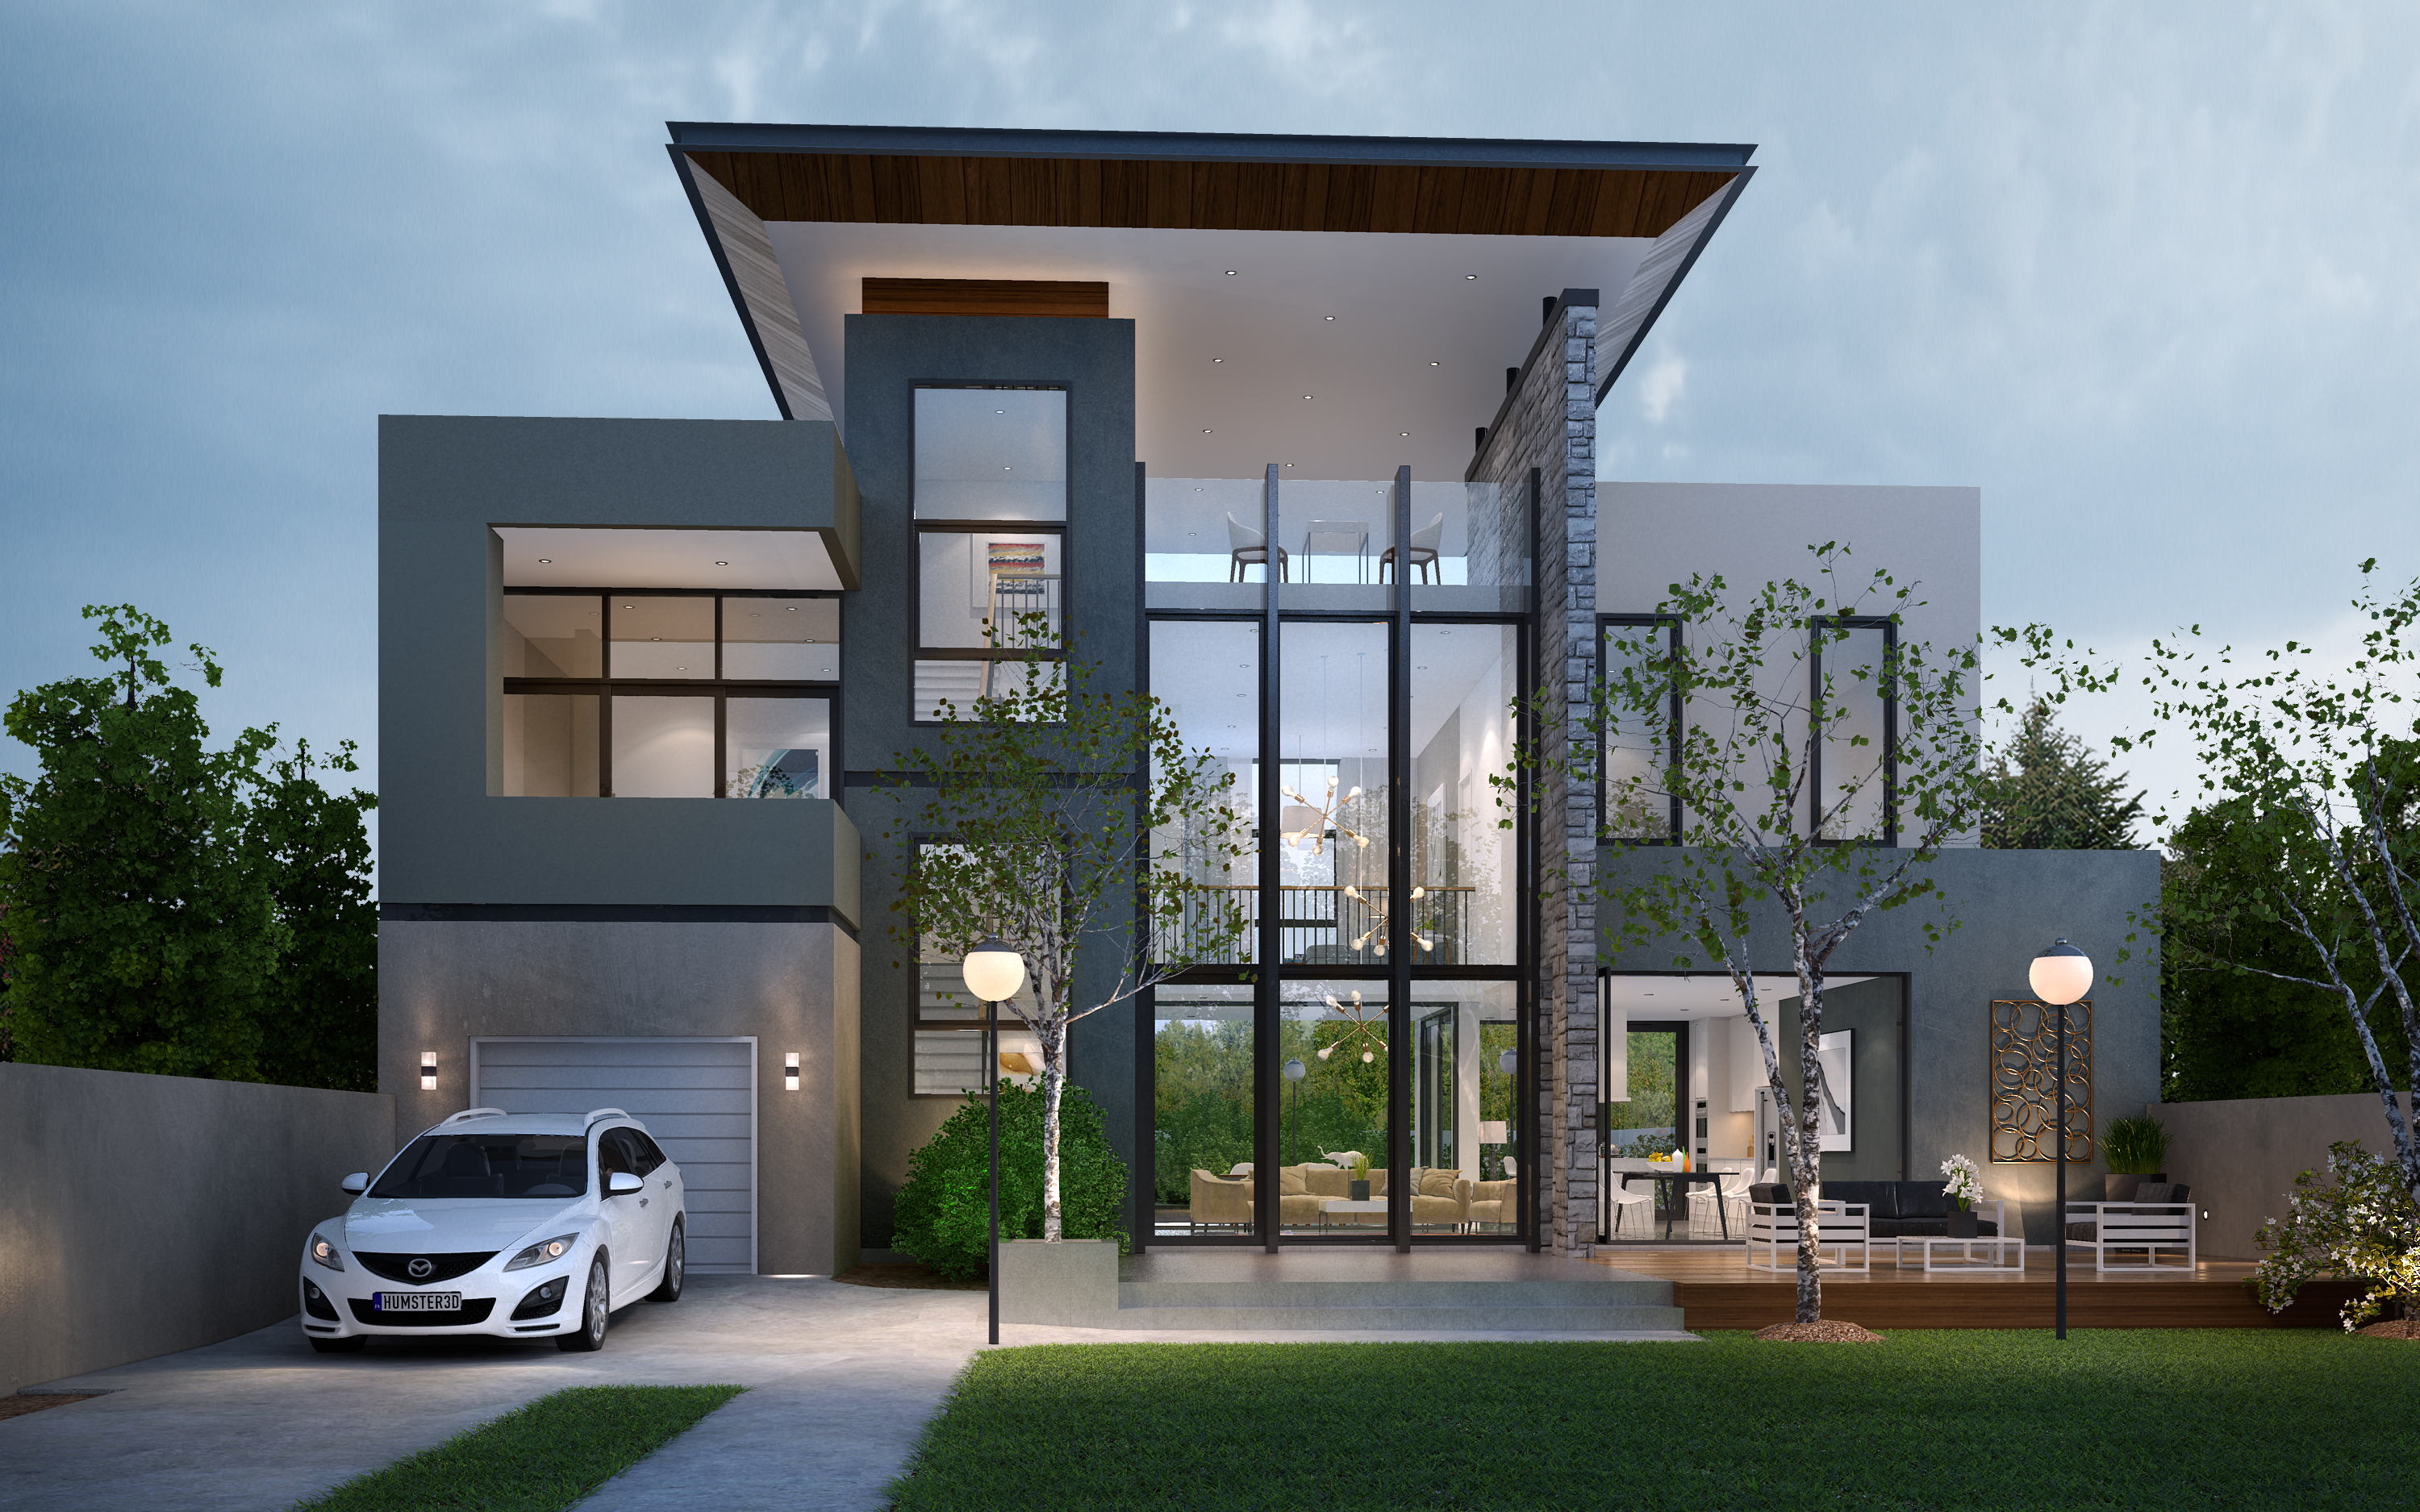 MODERN AND CHICH AND STRAIGHT FORWARD DESIGN 3D model - MODERN AND CHICH AND STRAIGHT FORWARD DESIGN, NO FLOWERY ELEMENTS, VERY FUNCTIONAL LAYOUT, AIRY DESIGN